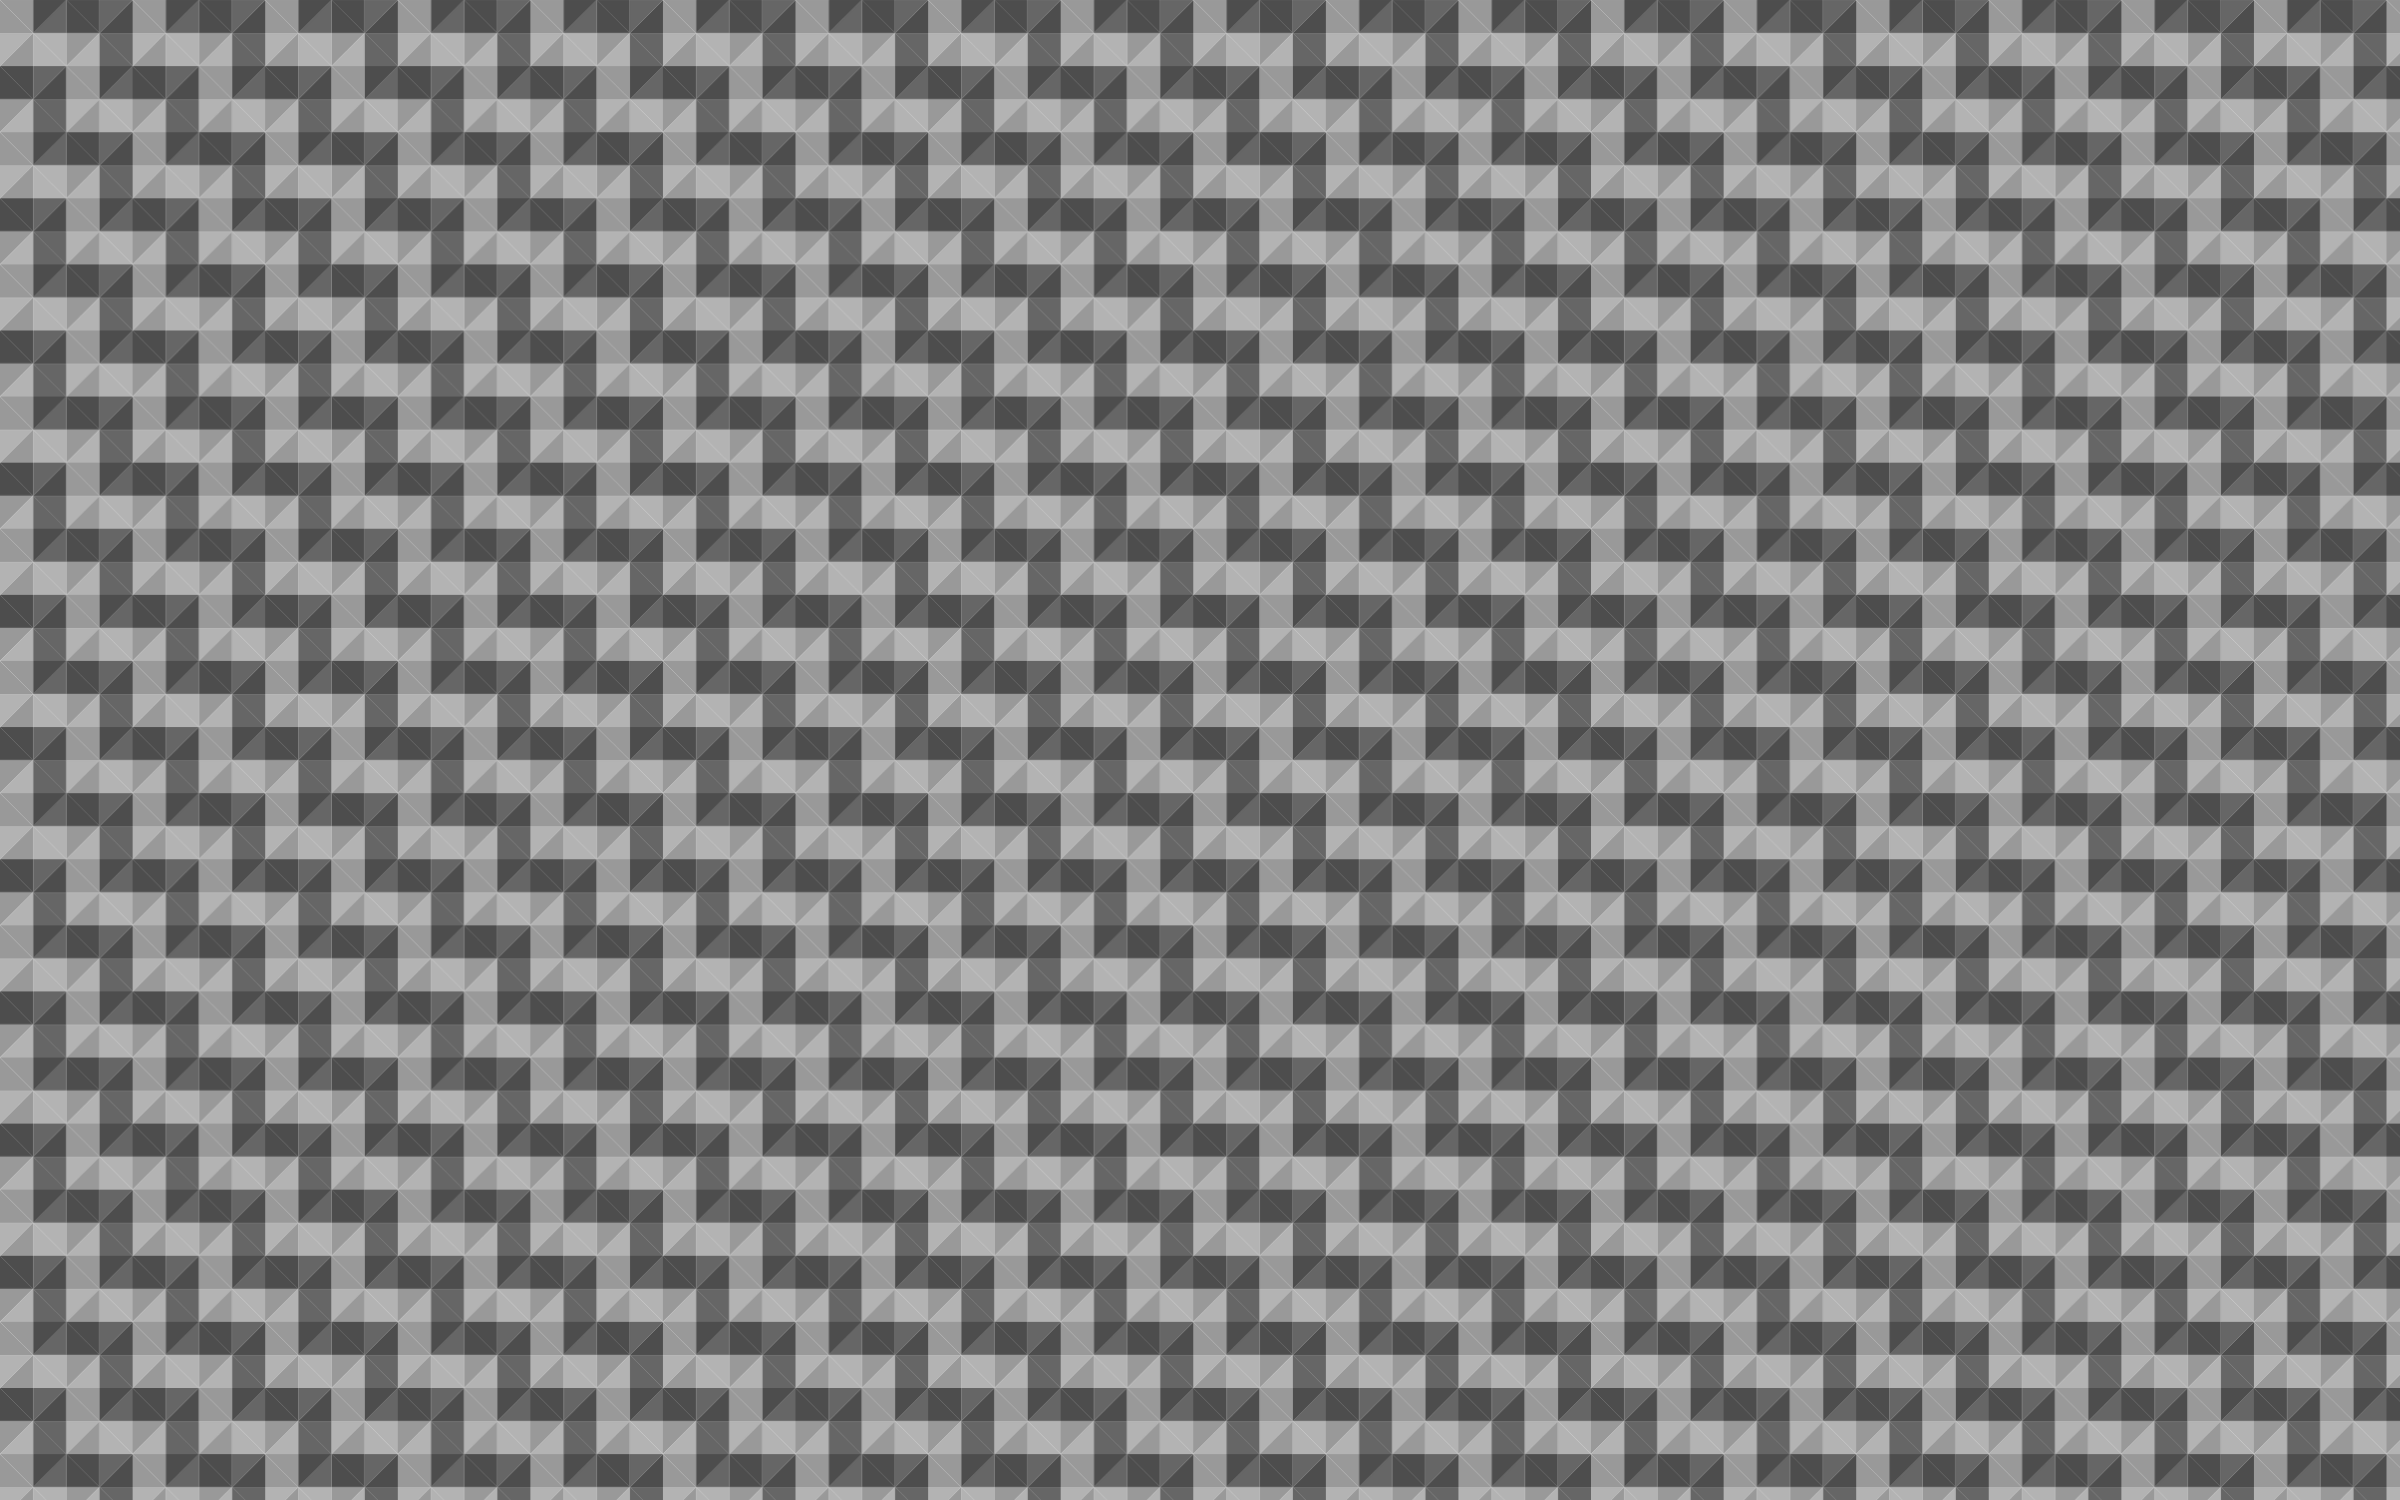 Seamless Grayscale Pyramids Pattern 4 by GDJ